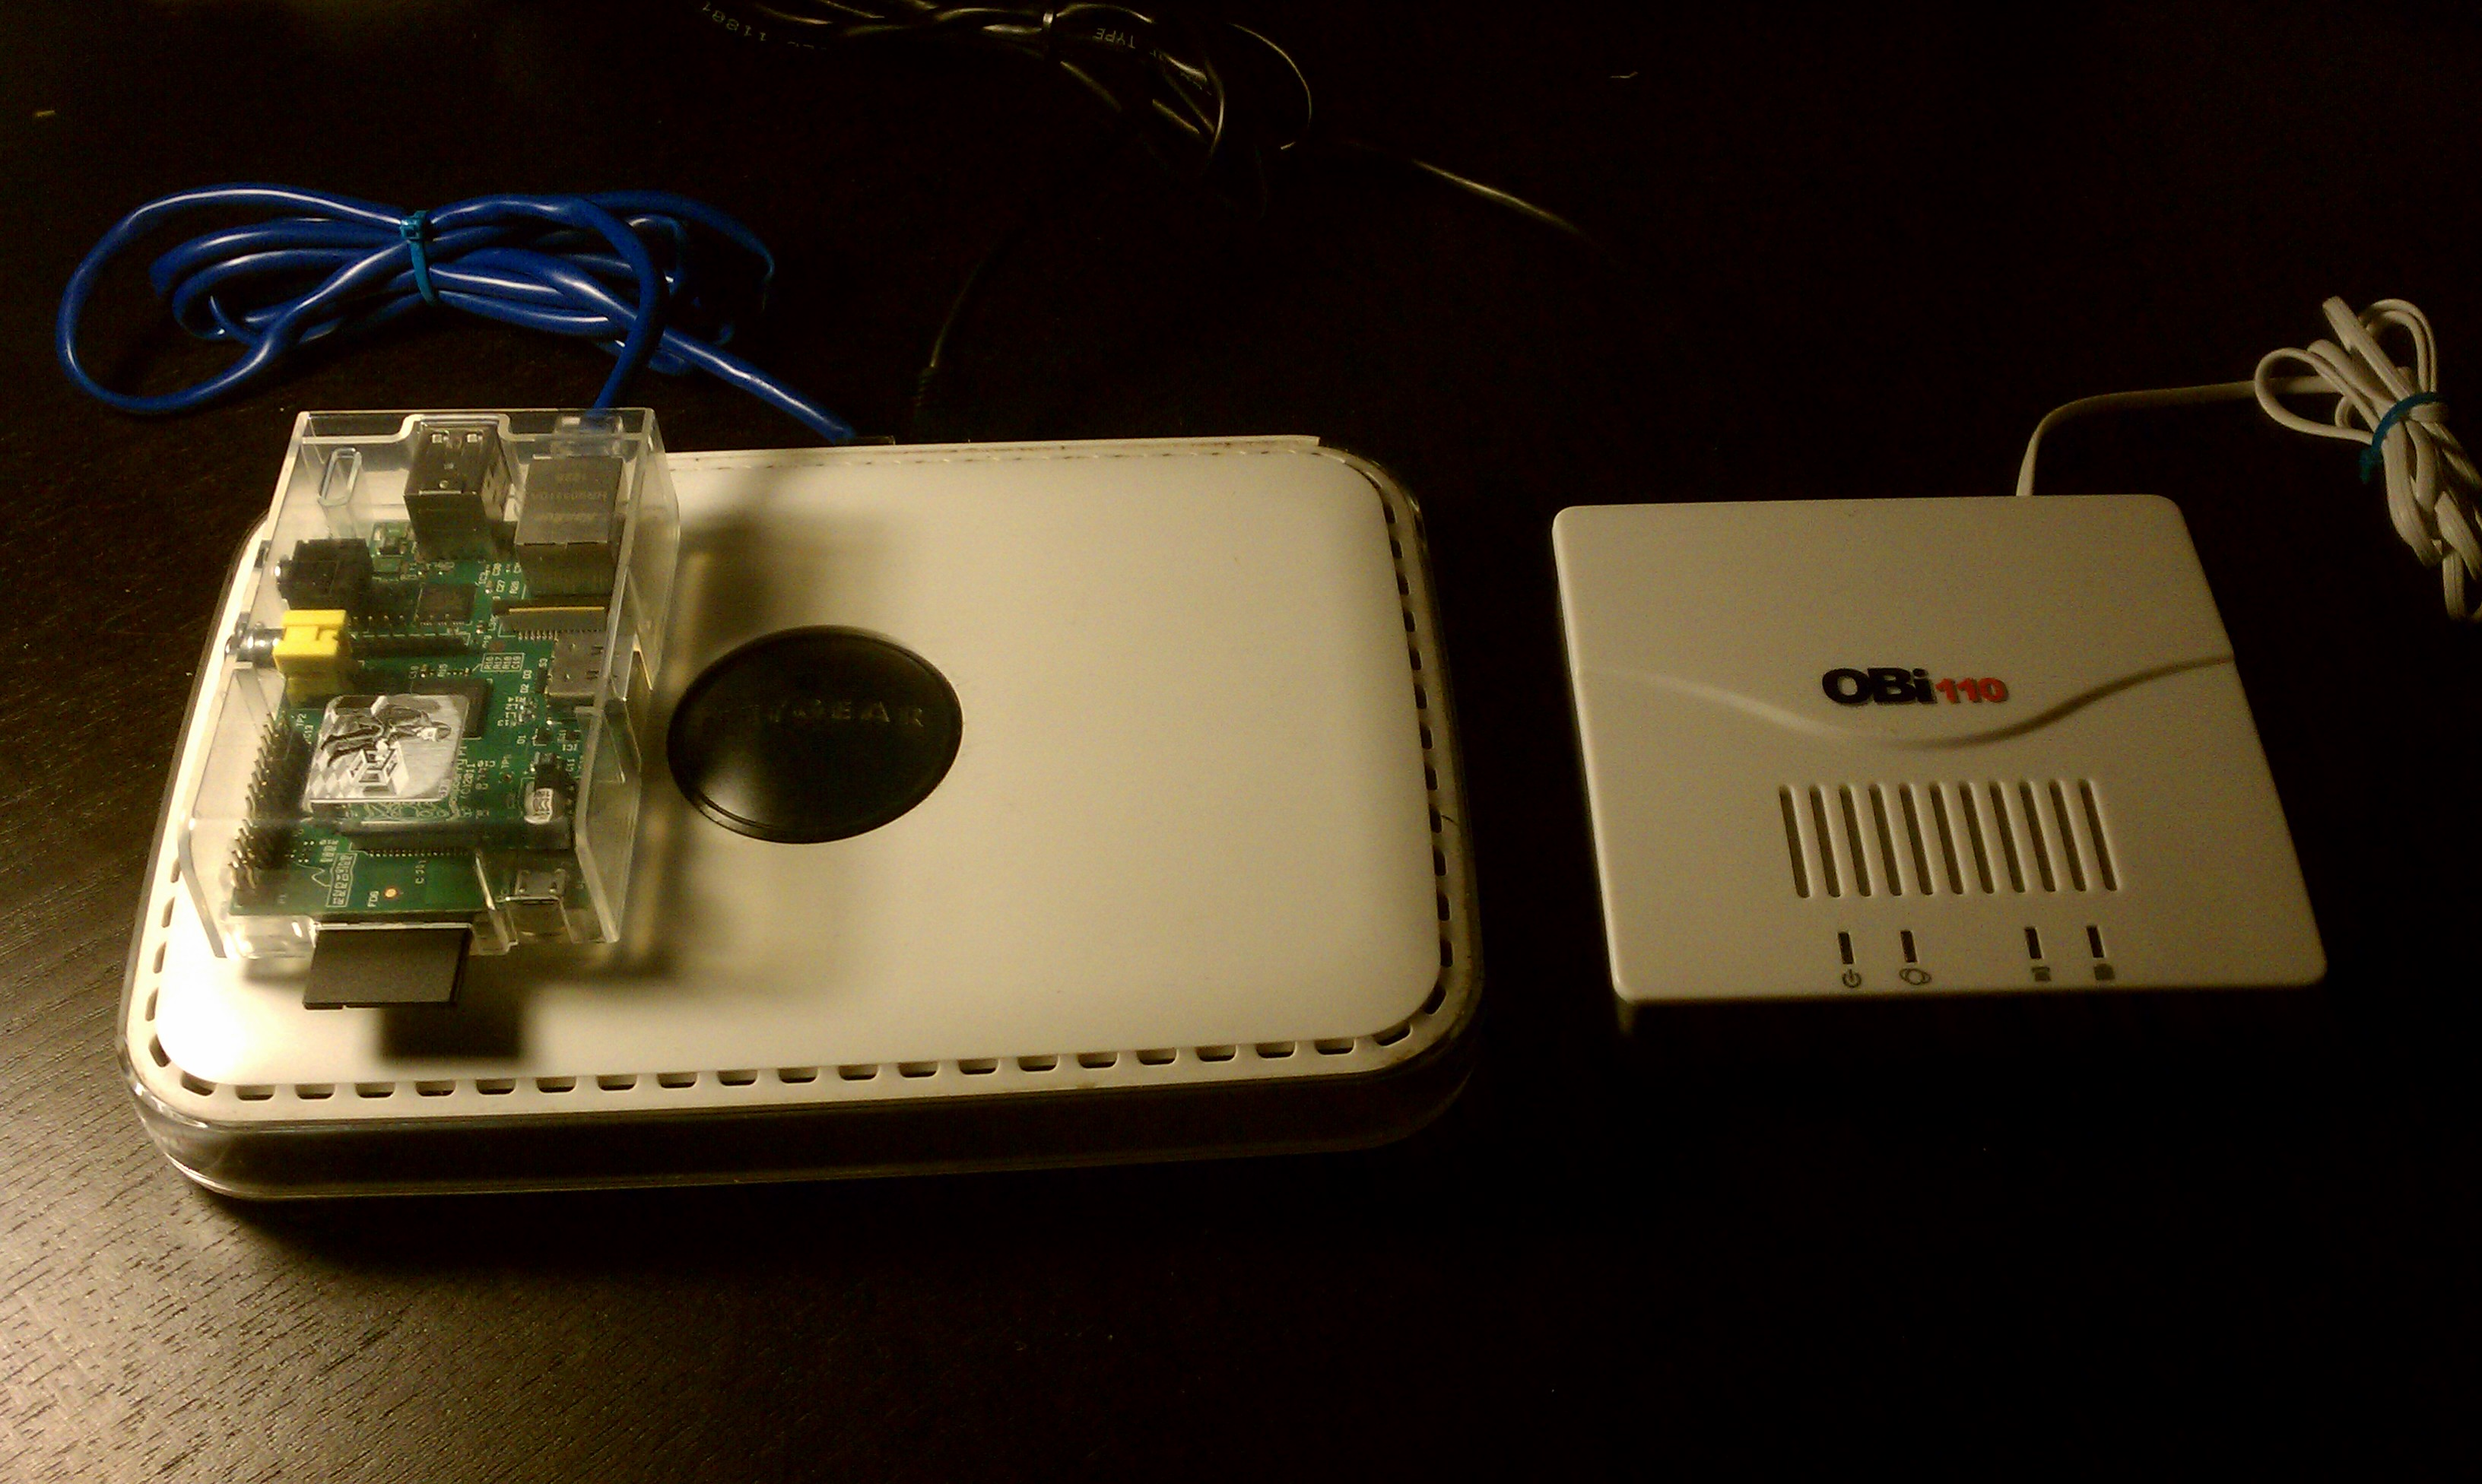 Ruiz's Raspberry Pi, a Netgear switch, and Obi110 telephone adapter.